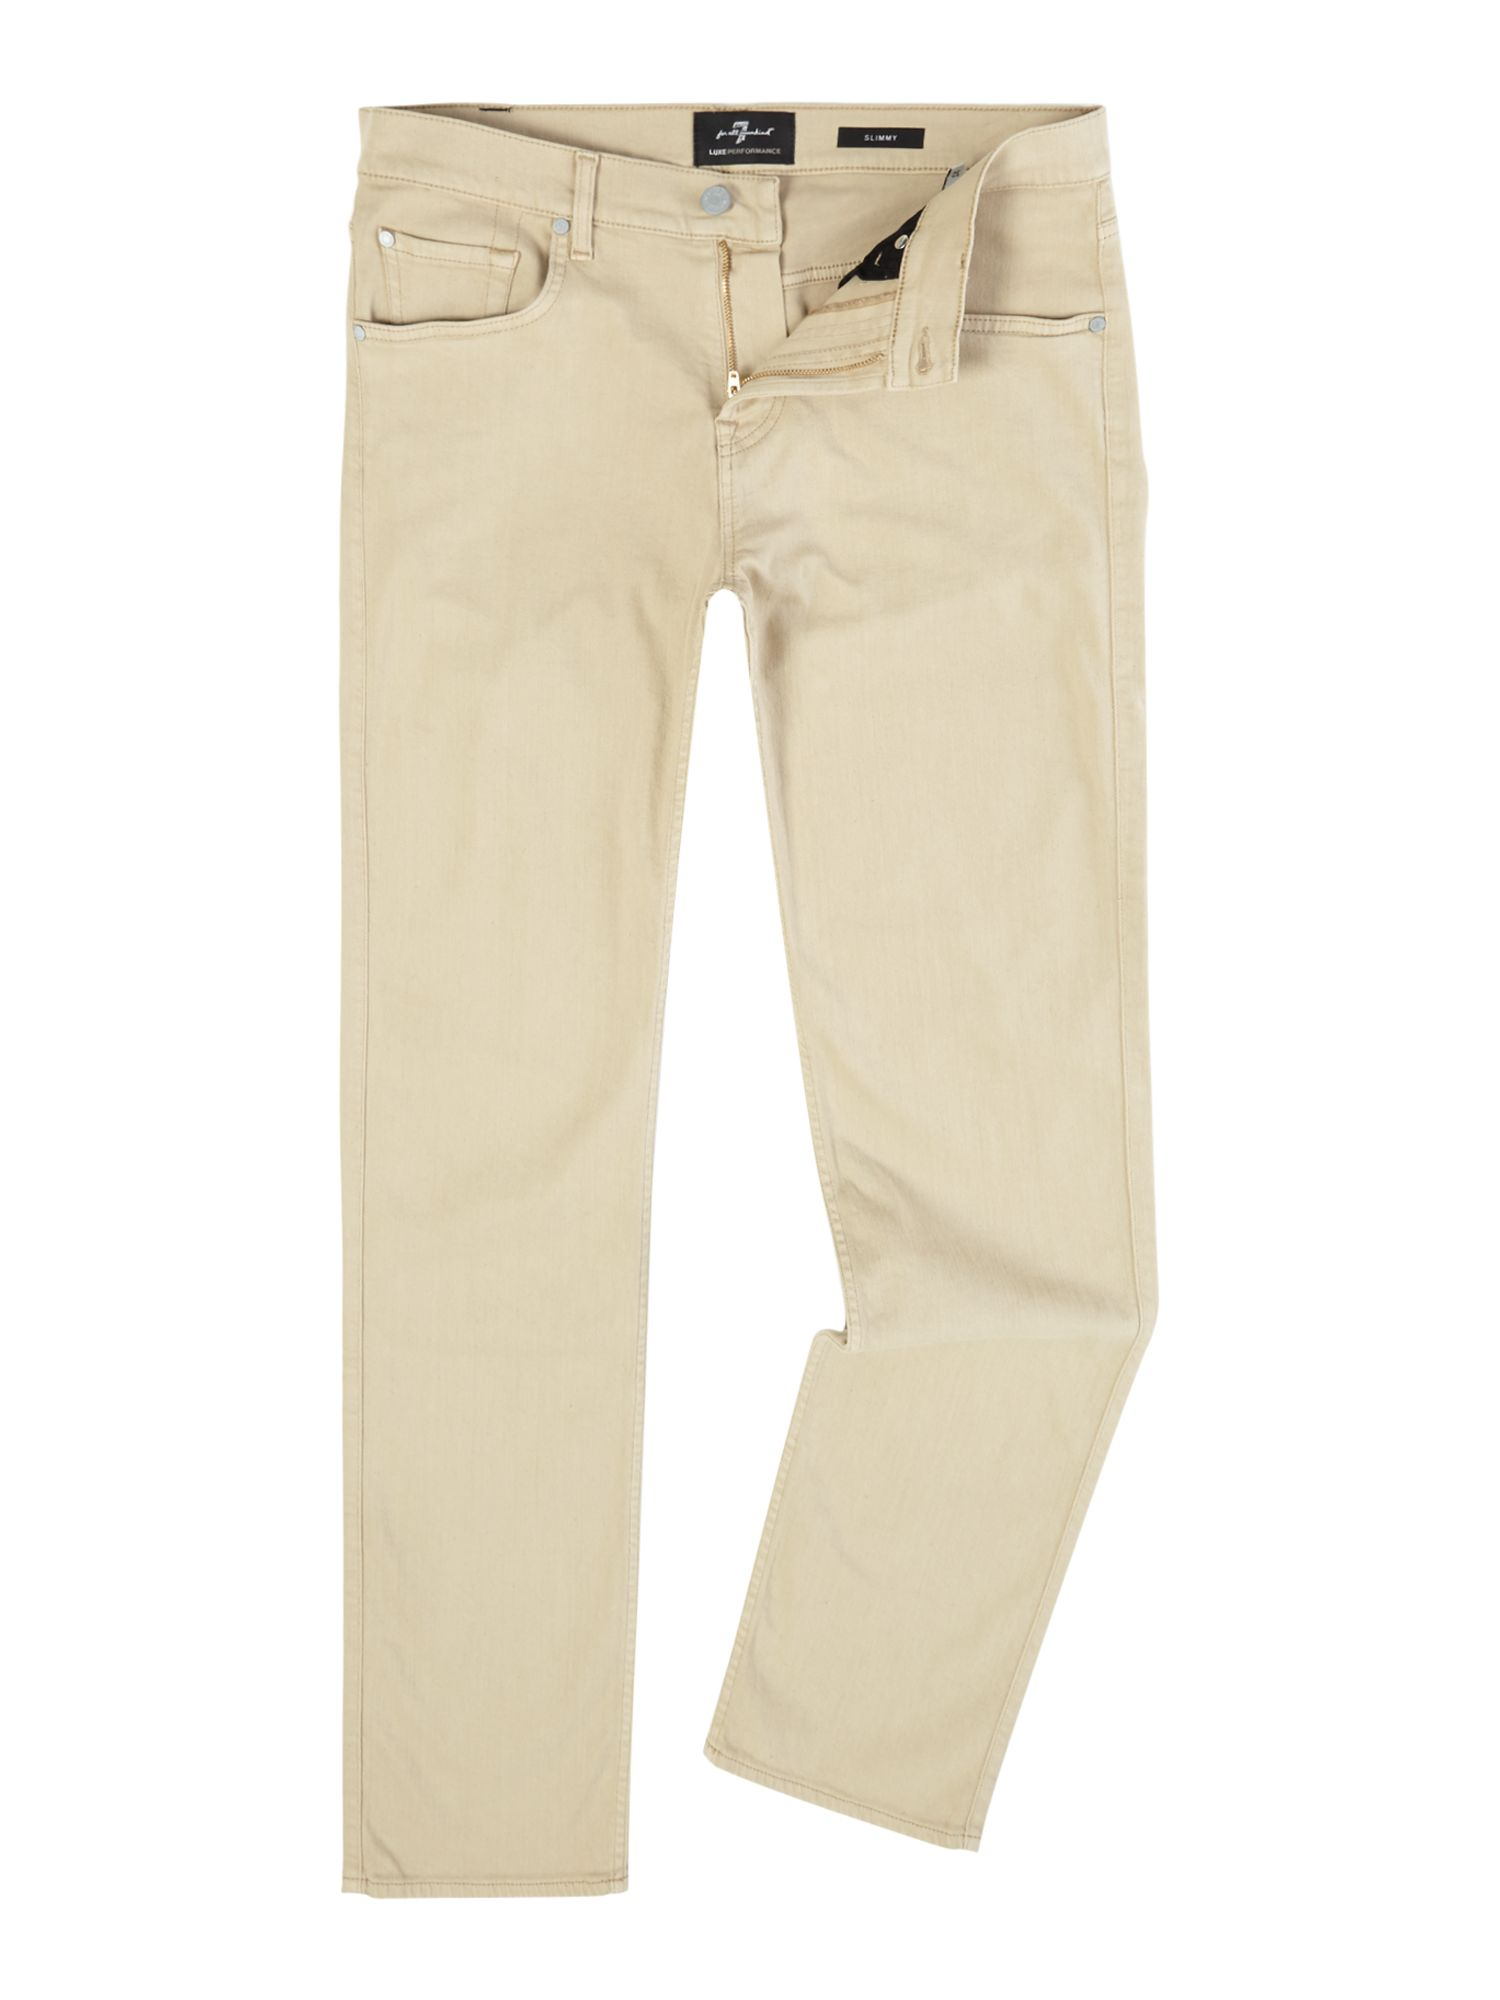 Mens Slim Fit Slimmy Luxe Performance Jeans, White